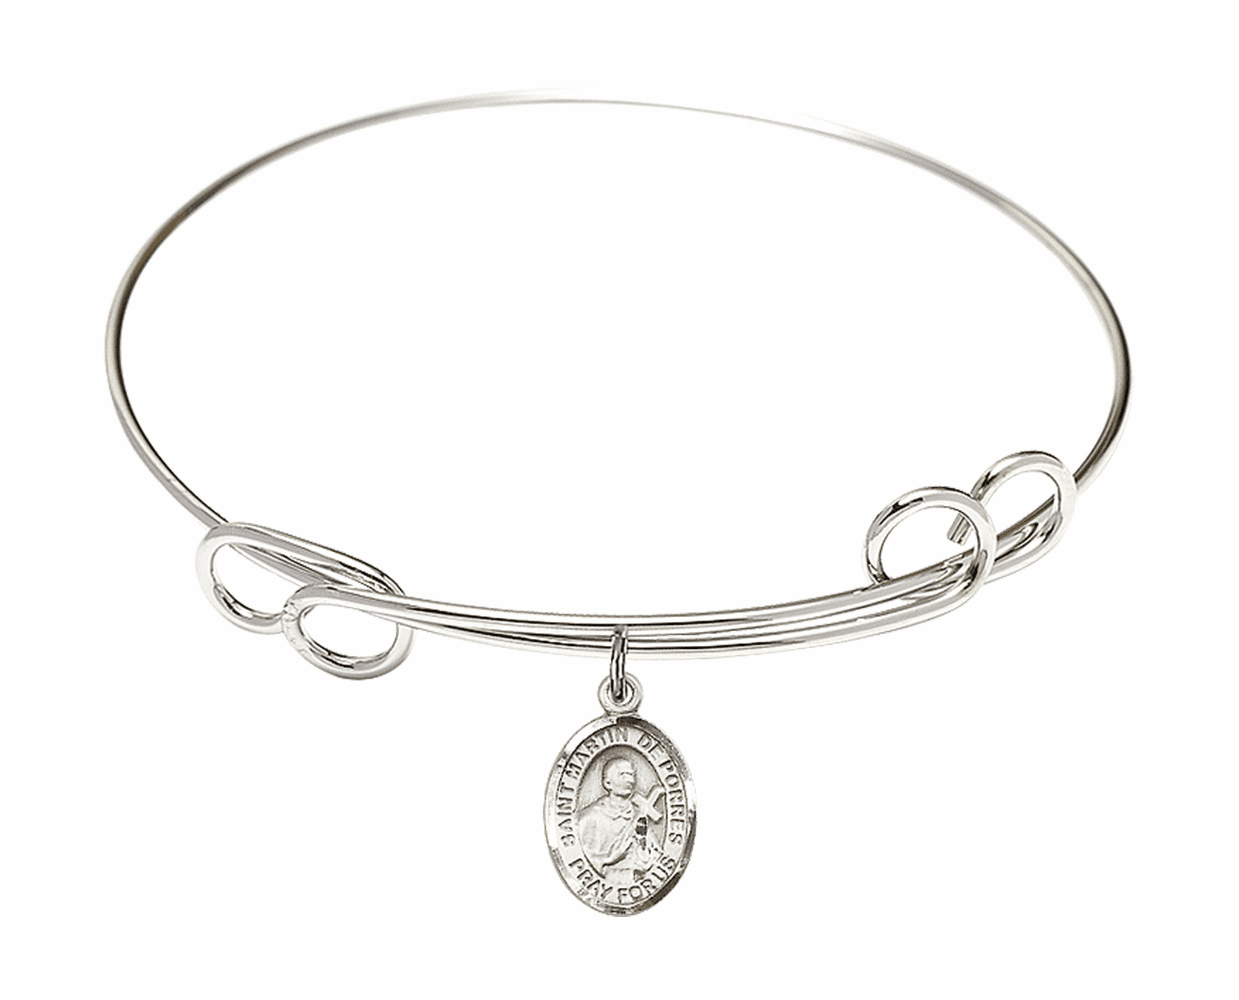 Round Loop St Martin de Porres Bangle Charm Bracelet by Bliss